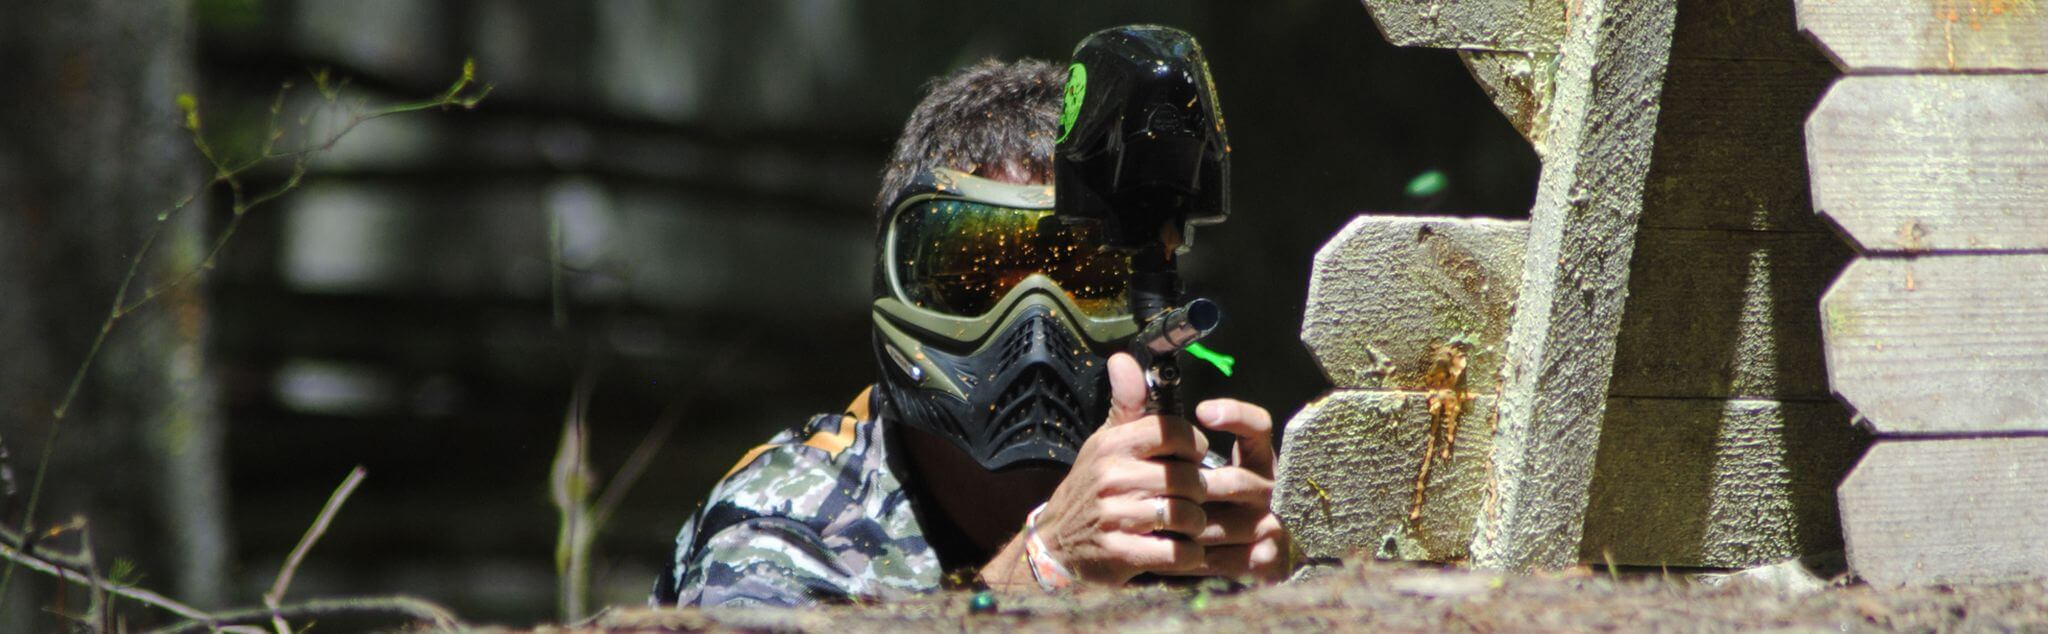 Paintball en Gran Canaria